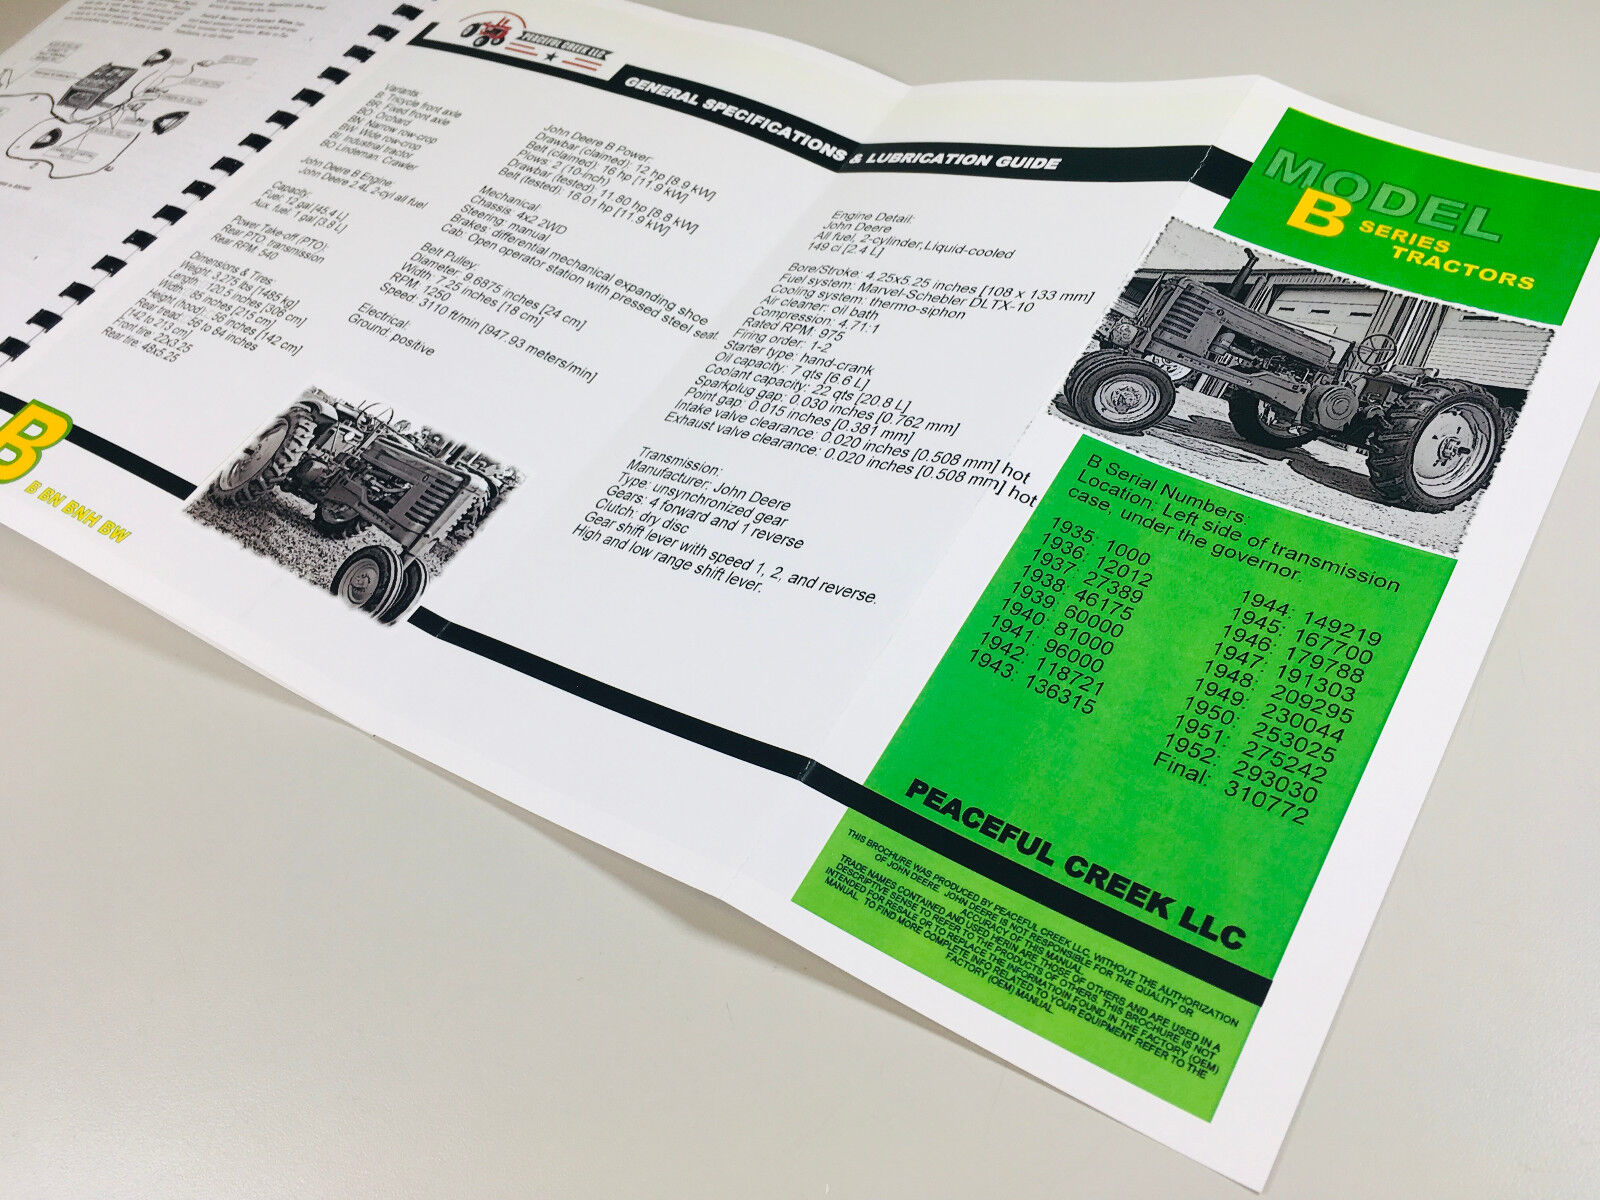 Service Manual John Deere B Bn Bw Bwh Bnh Styled Tractor Plete. Shipped Out Quicklyorders Placed Before Noon Central Time Generally Go Same Day. John Deere. 1949 John Deere B Transmission Diagram At Scoala.co